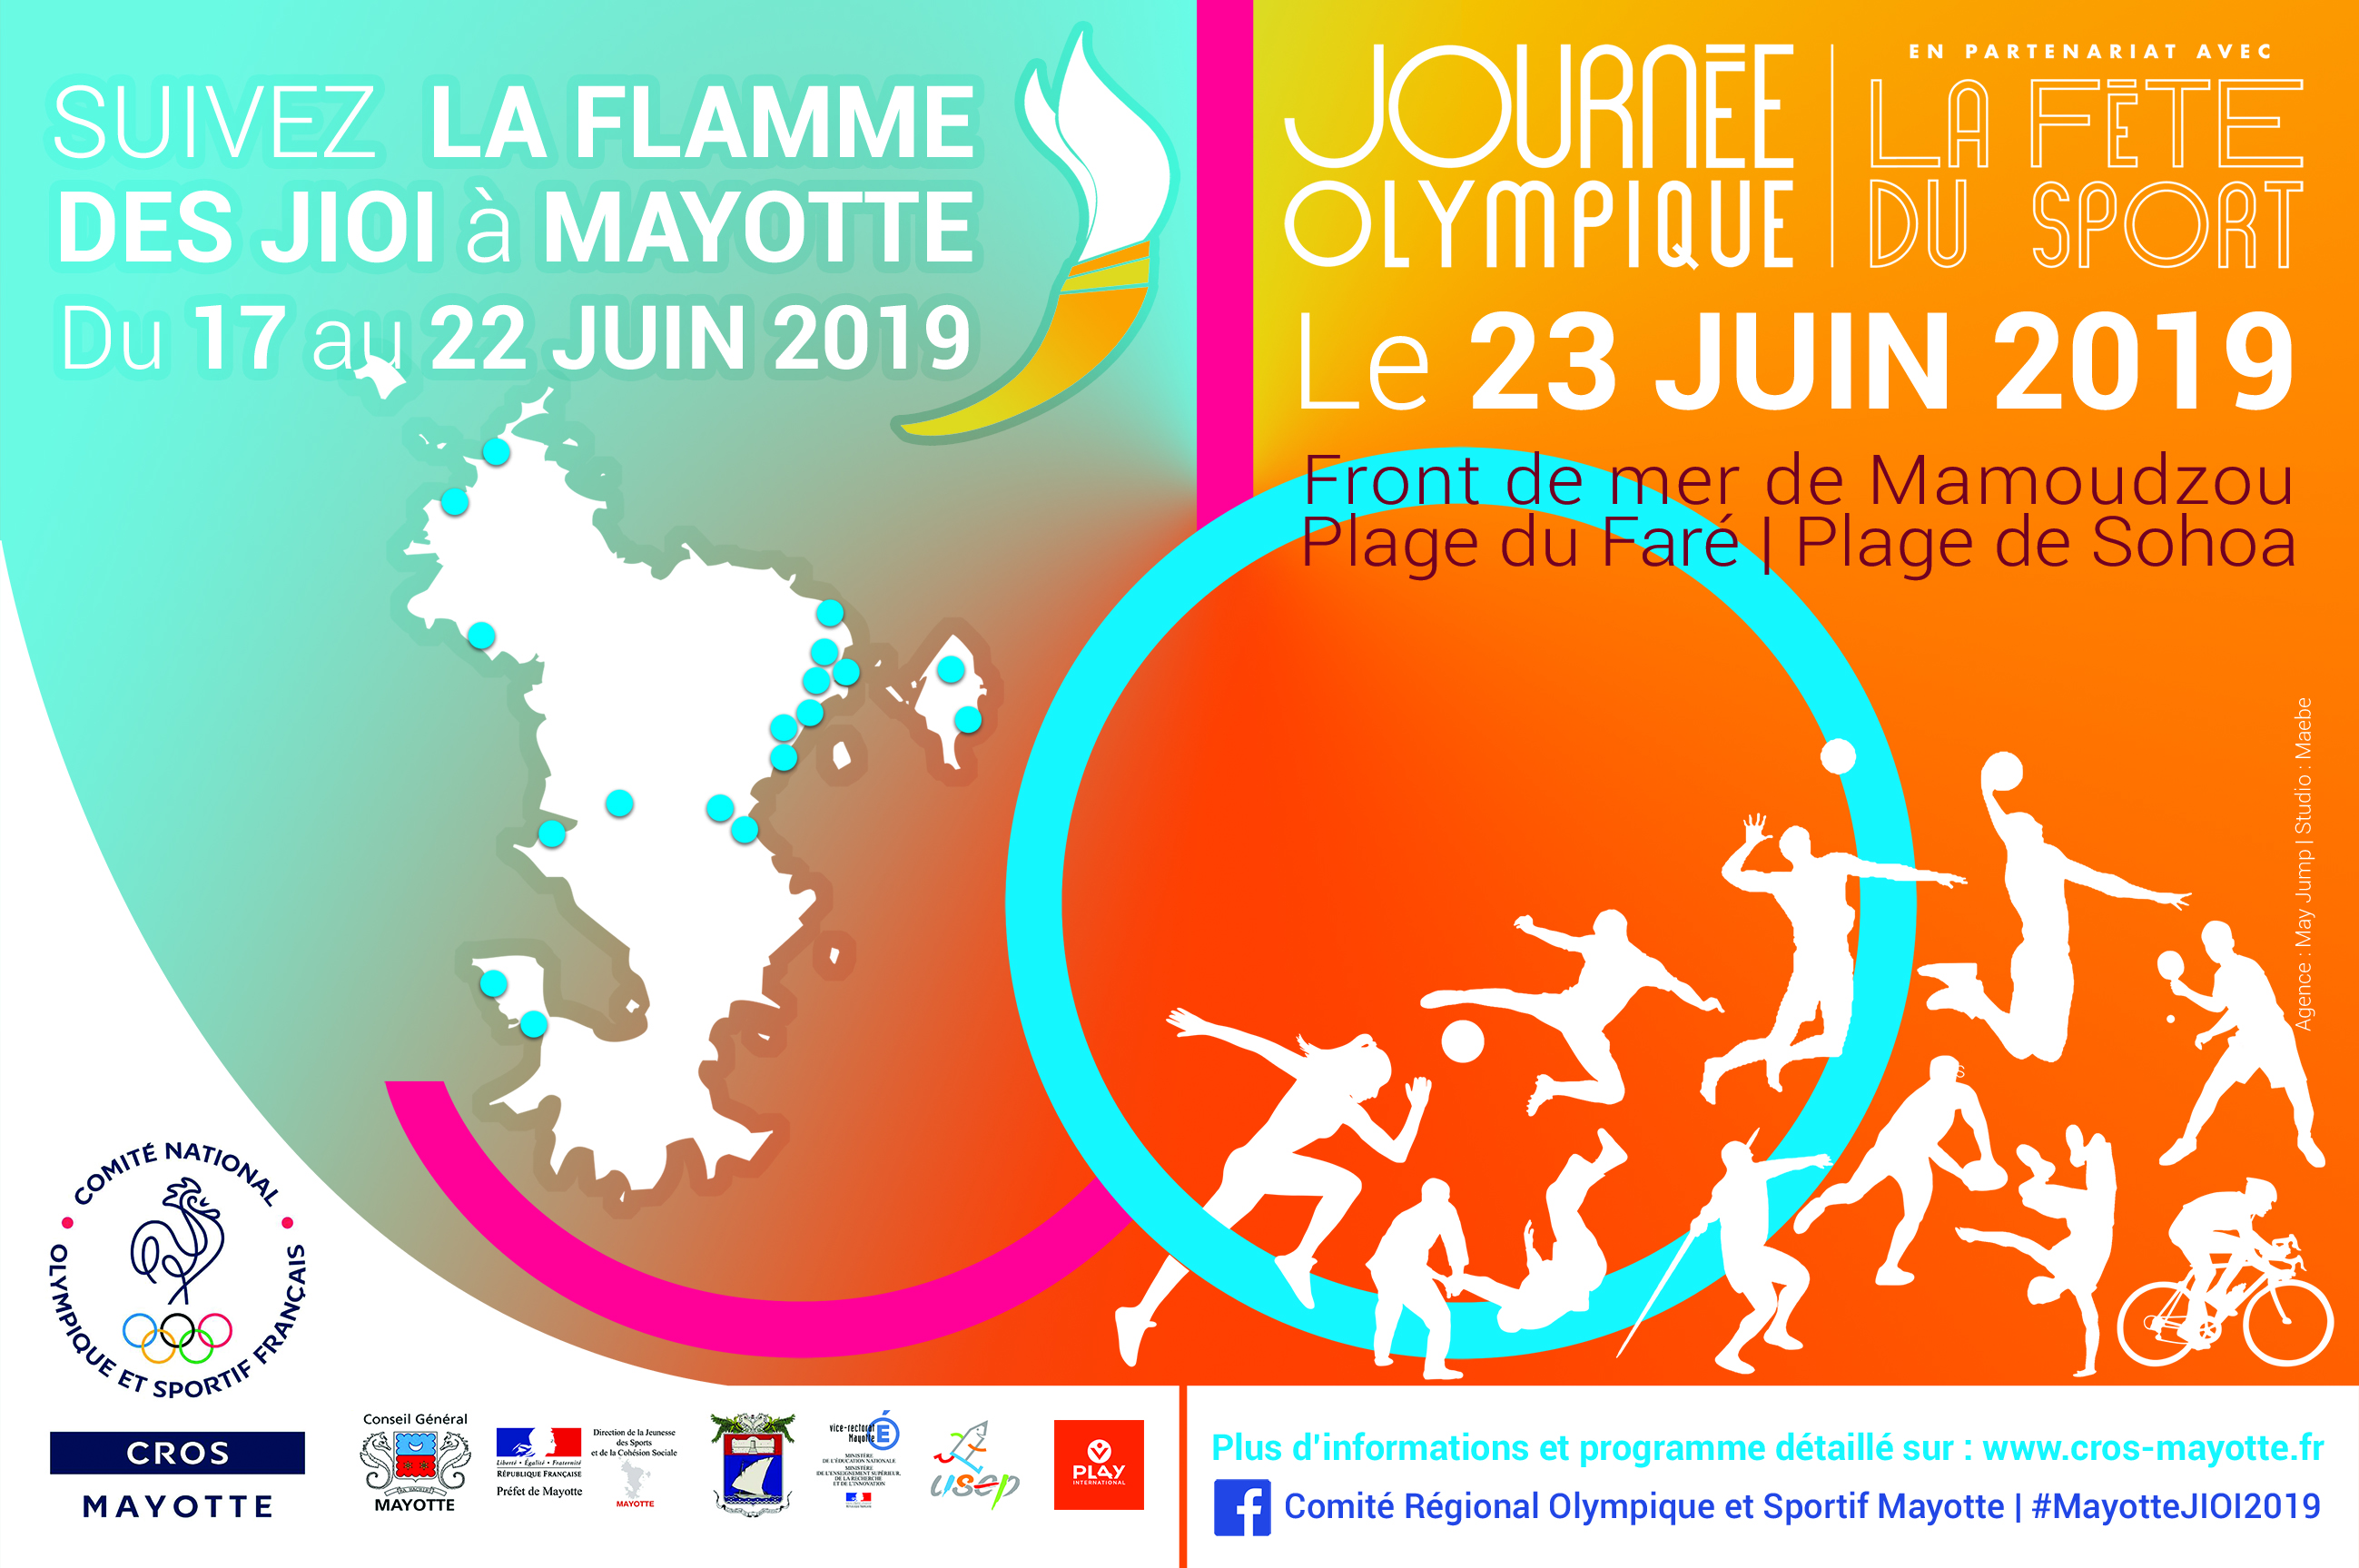 Flamme des JIOI 2019 / Journée olympique